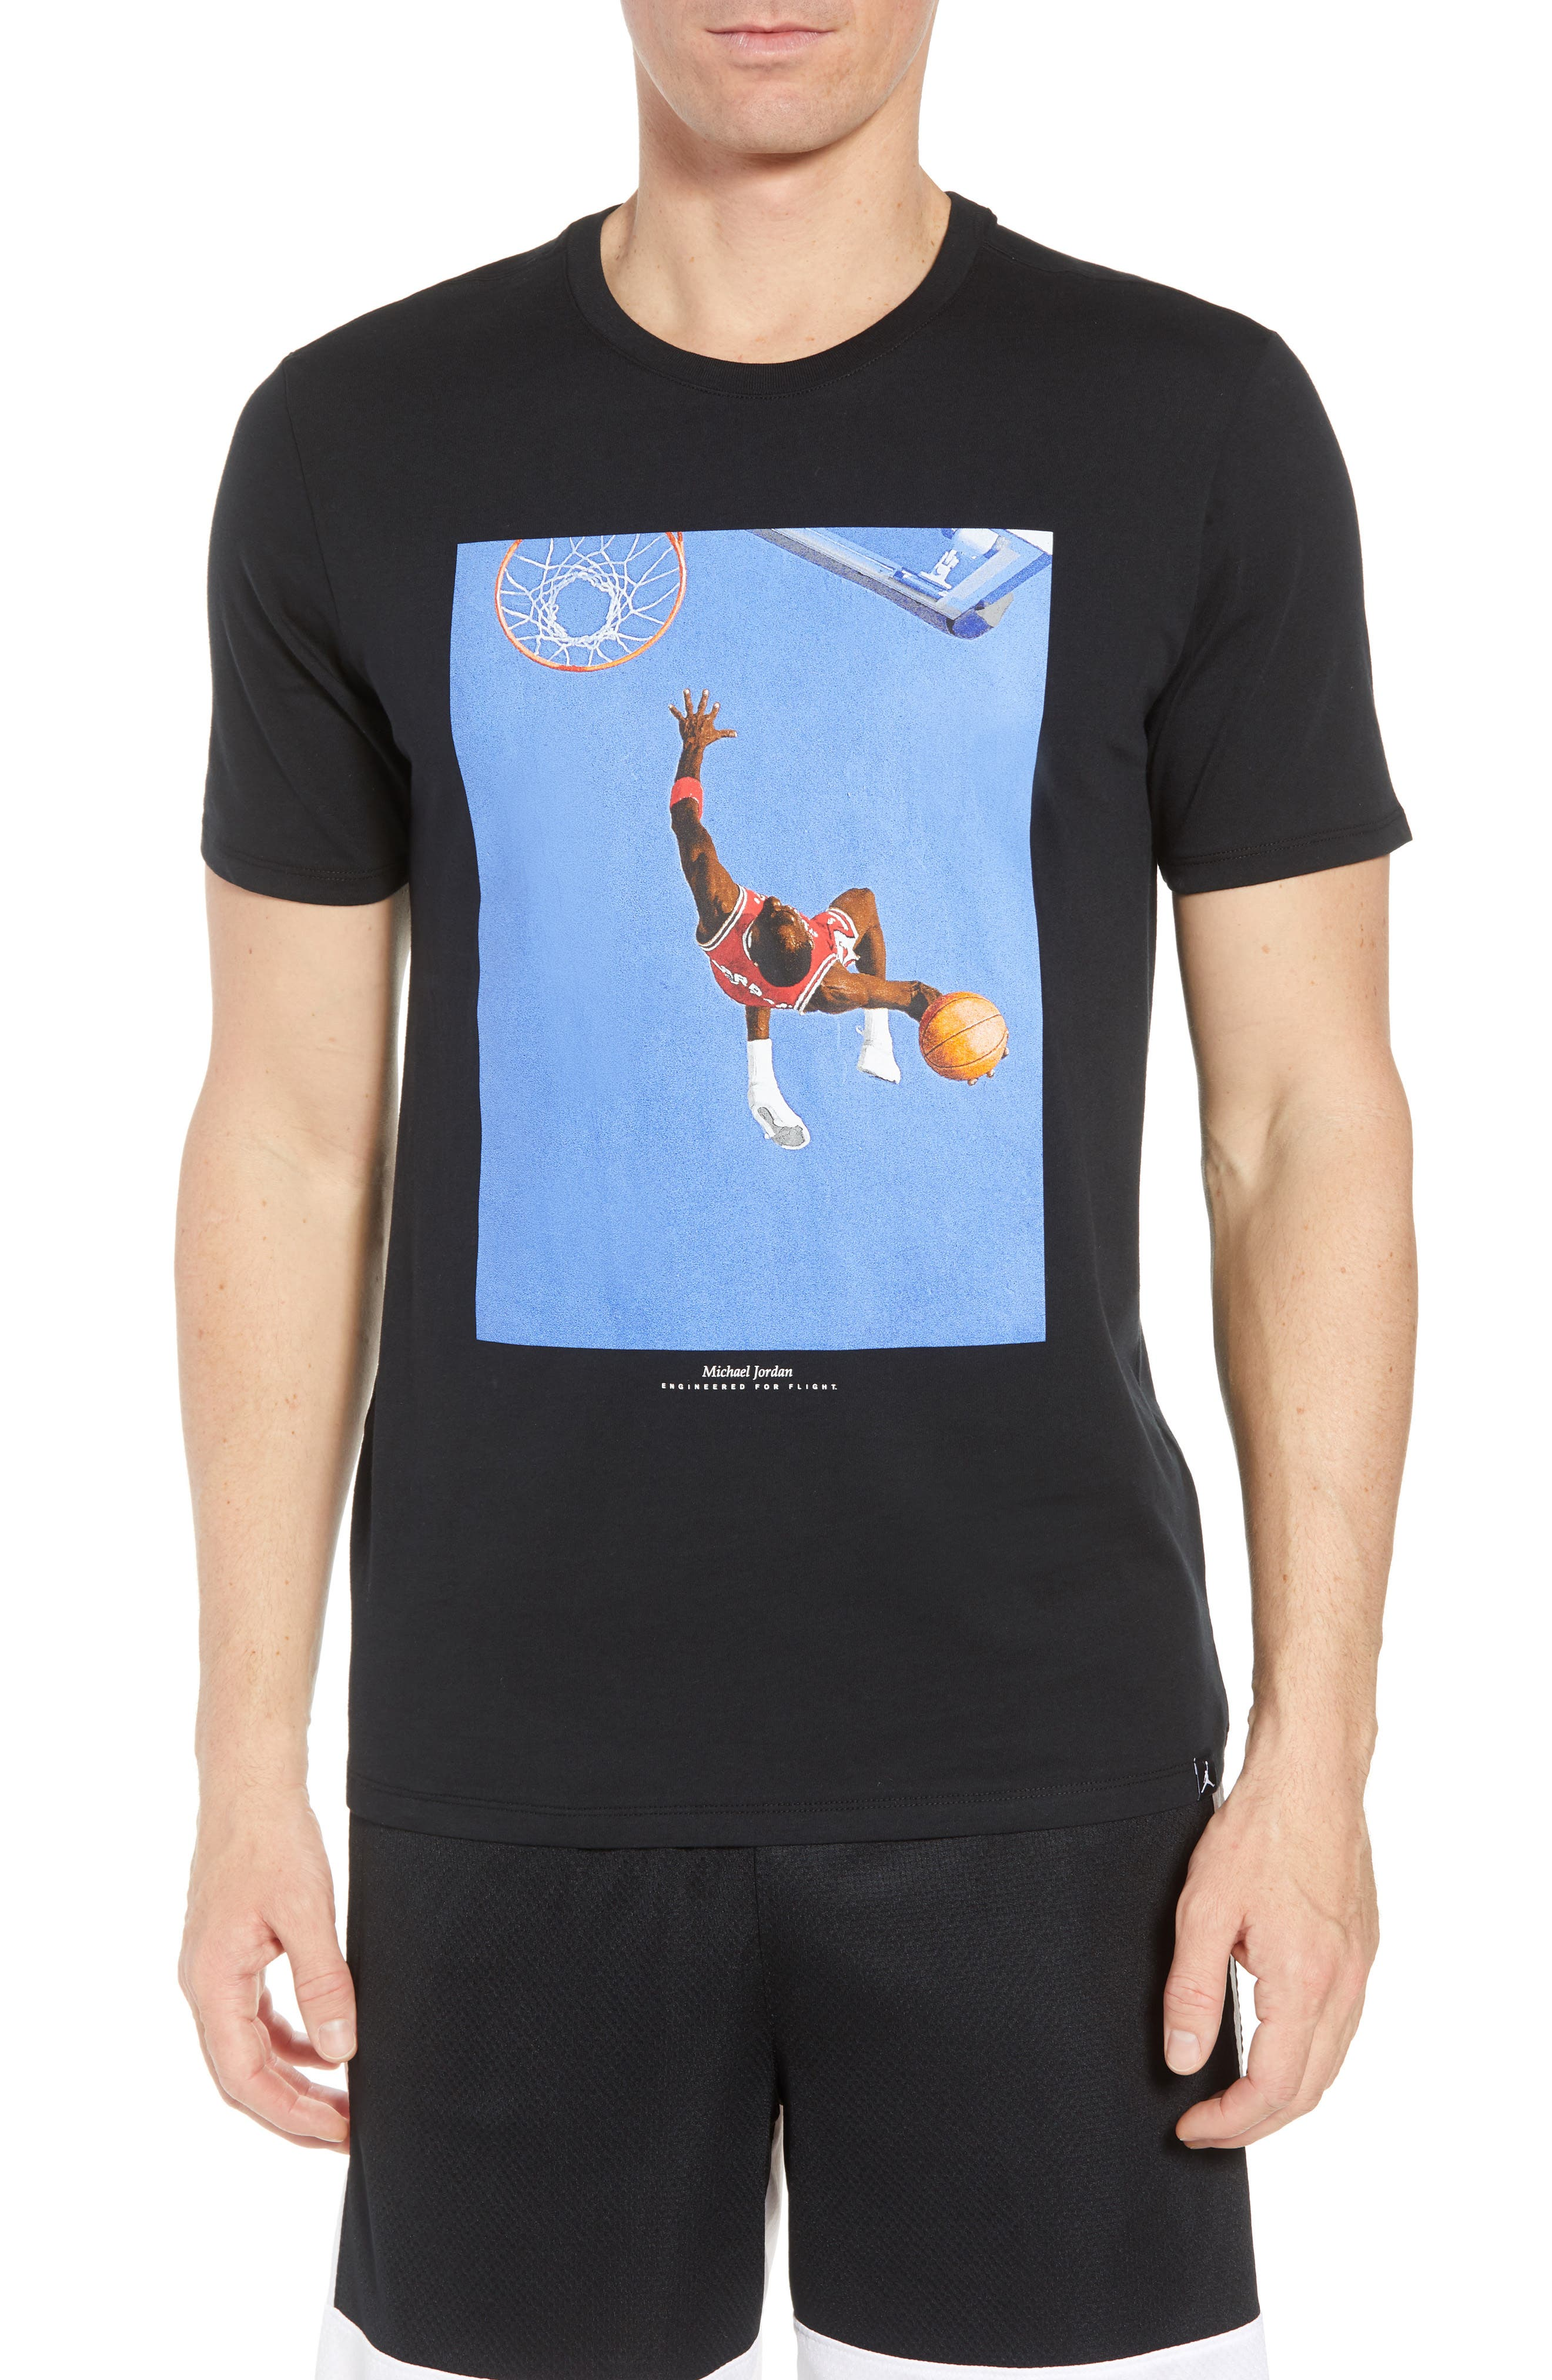 Sports Illustrated Graphic T-Shirt,                             Main thumbnail 1, color,                             010